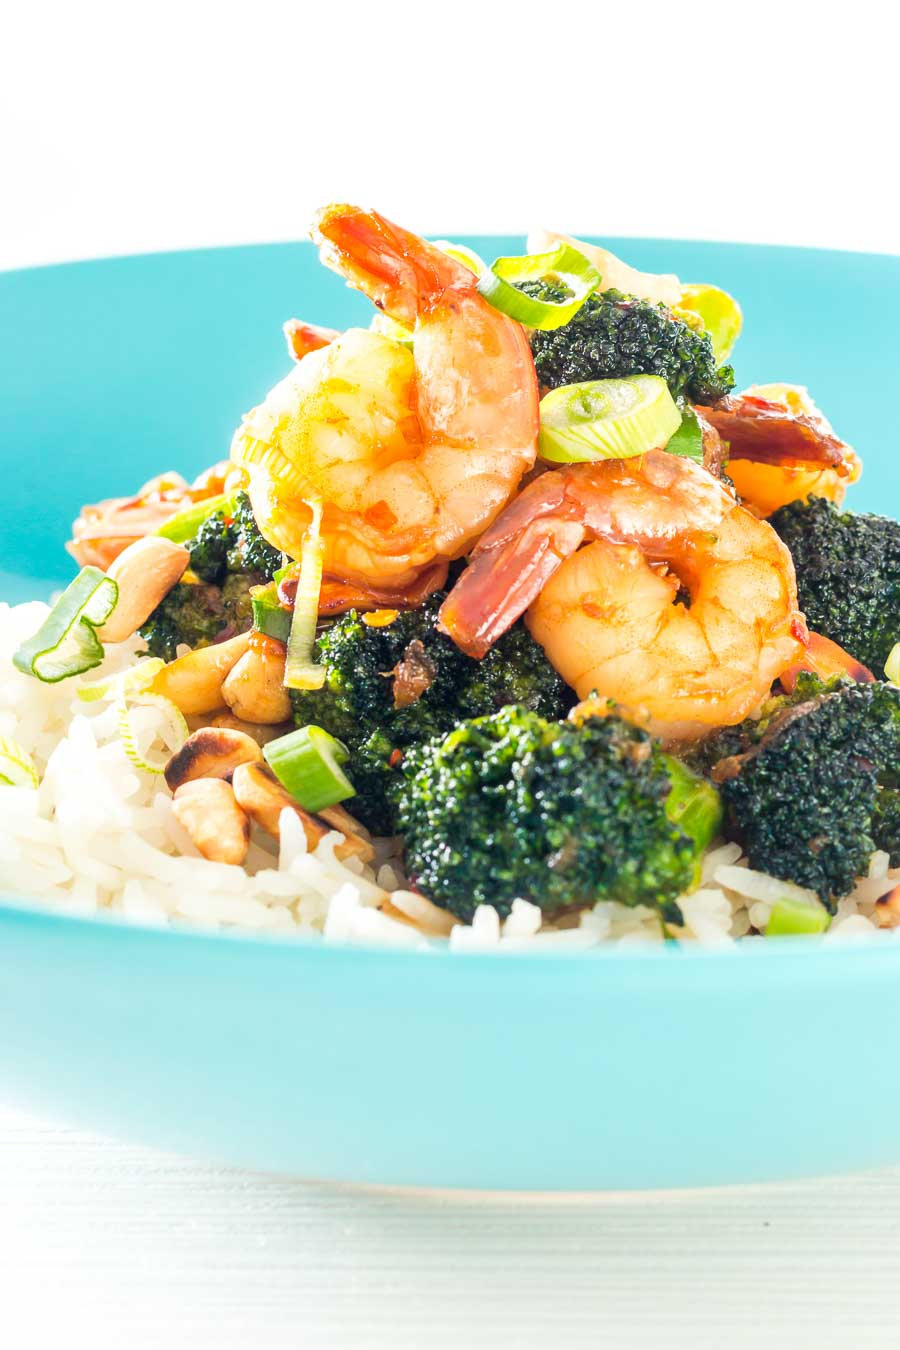 This Teriyaki Shrimp with Broccoli dish is one of those crazy quick moorish dishes that will have you dumping those takeaway menus!